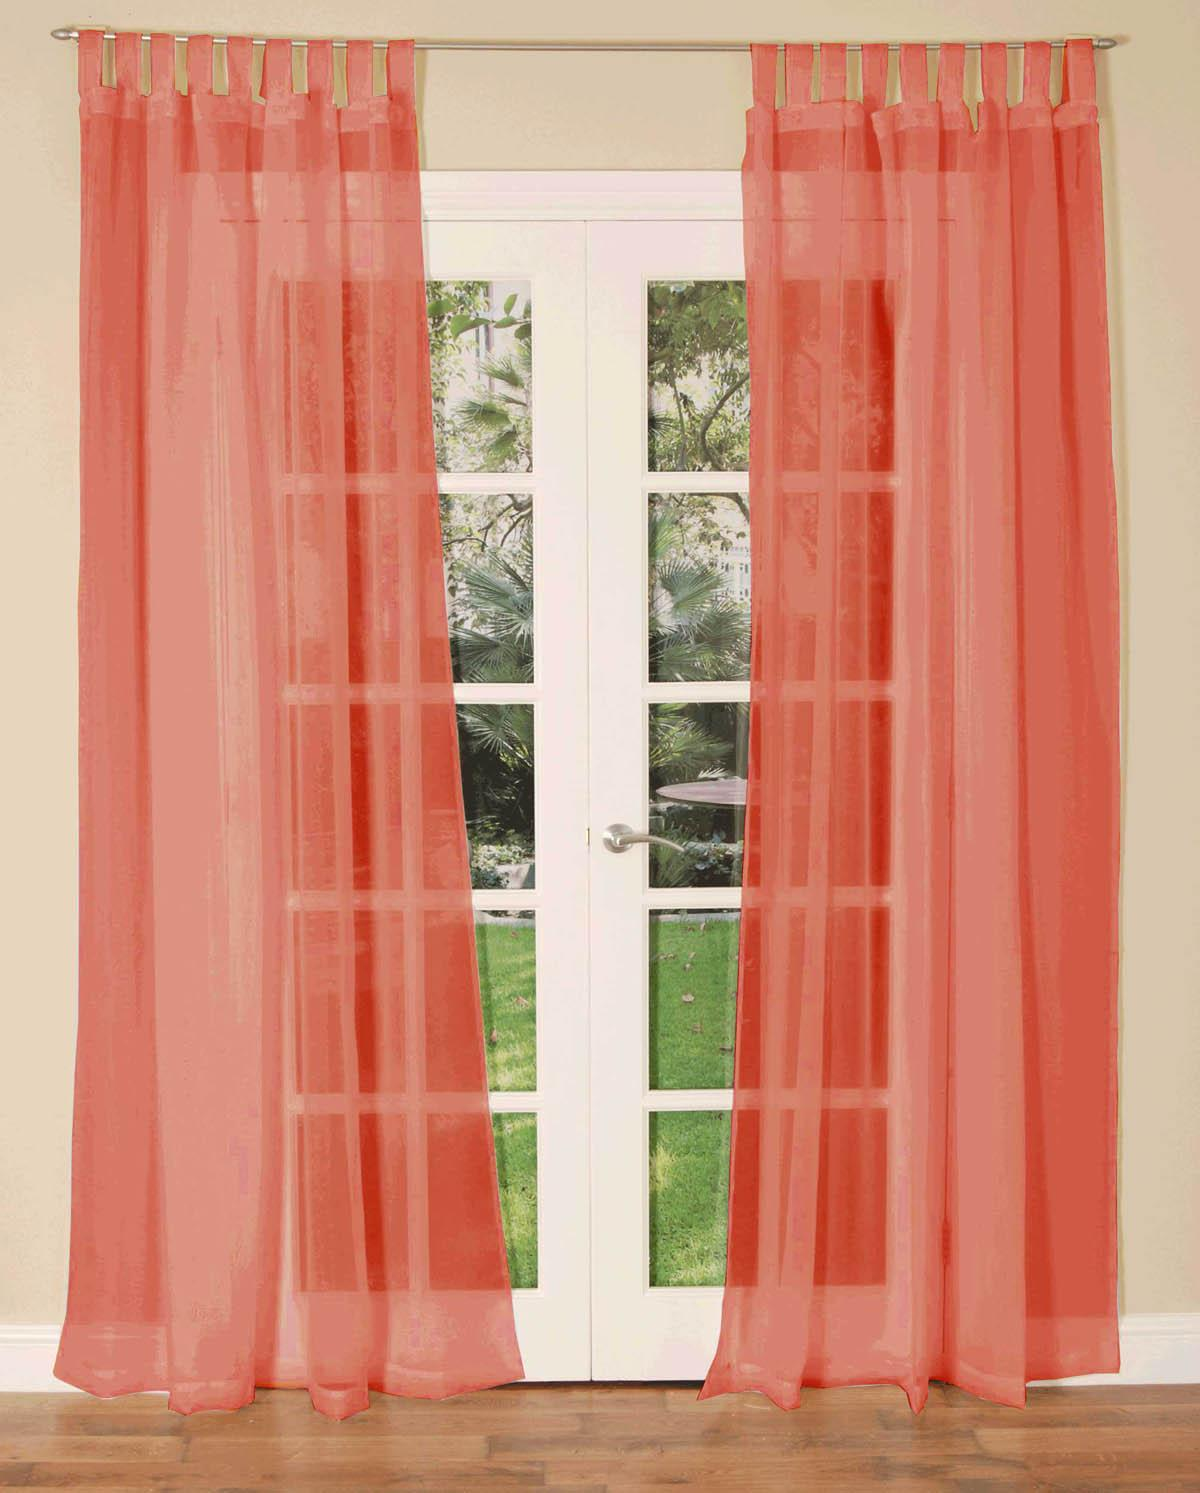 More specifically, the AINA style comes in at $ for a pair of percent linen curtains, and their variety of roller blinds are popular with bloggers like Anna of Door Sixteen. World Market This retailer has lots of colorful cotton options for curtains that consistently get positive reviews.